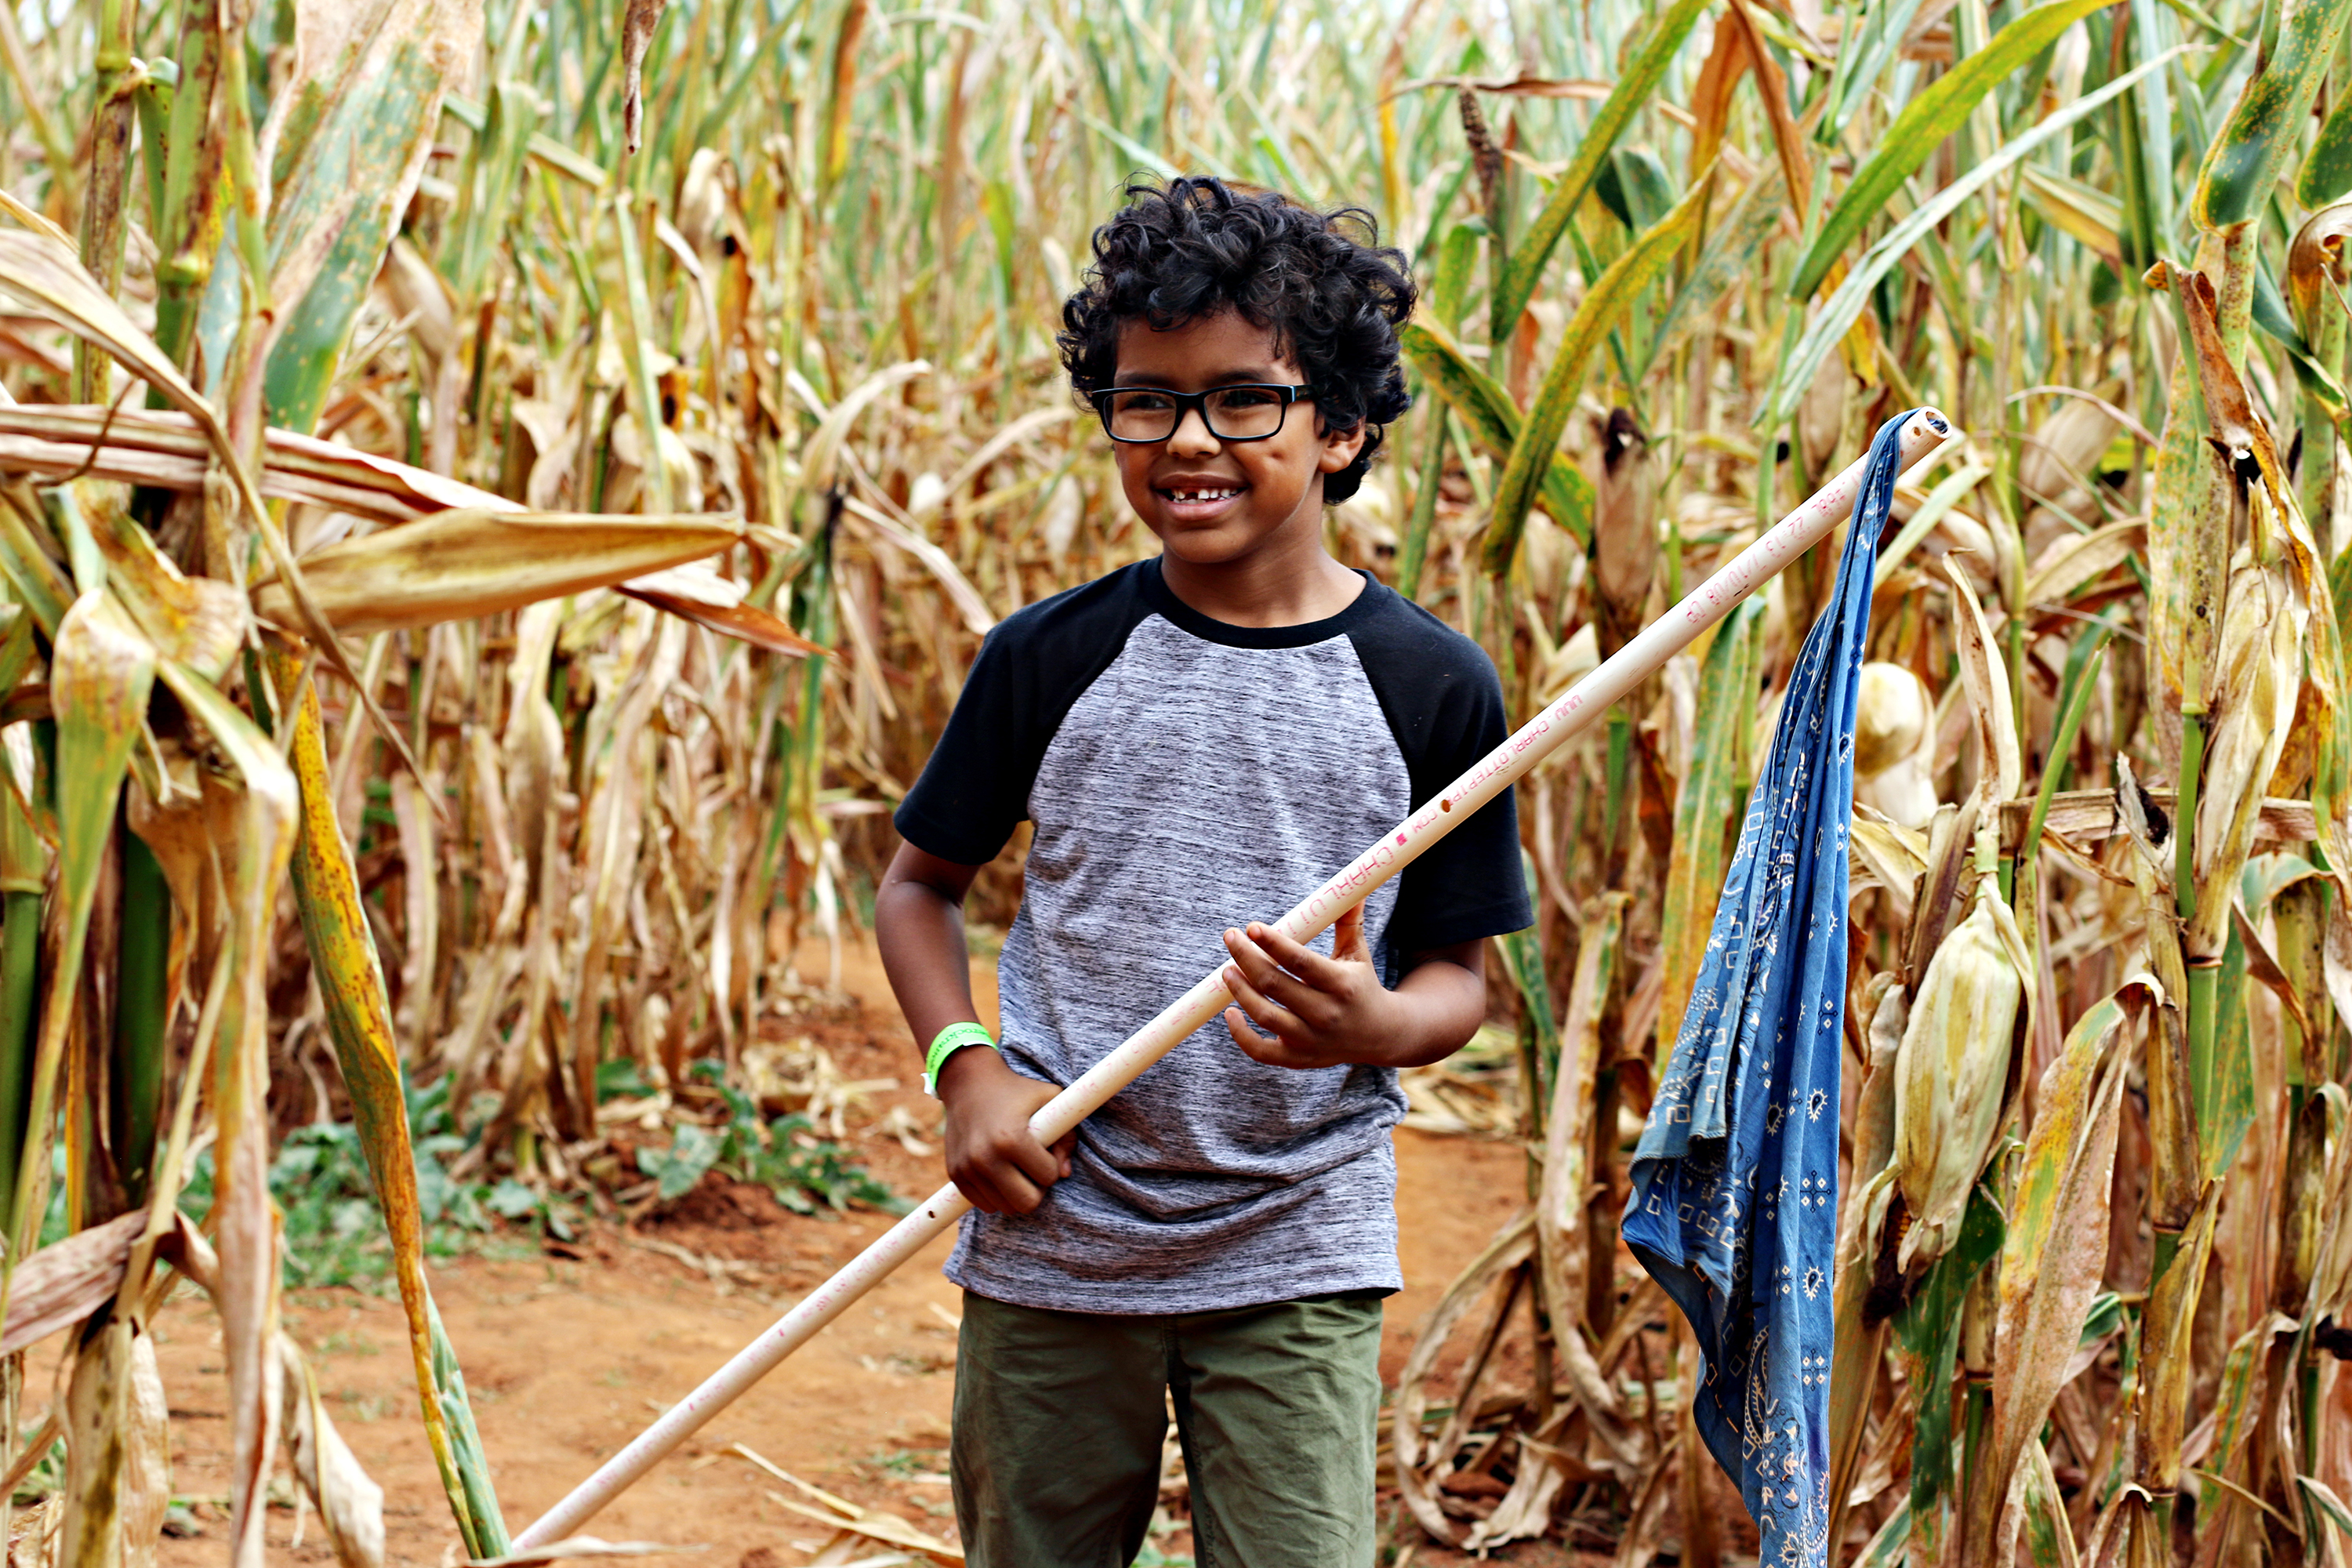 Smiling boy holding a flag in the corn maze at The Rock Ranch.